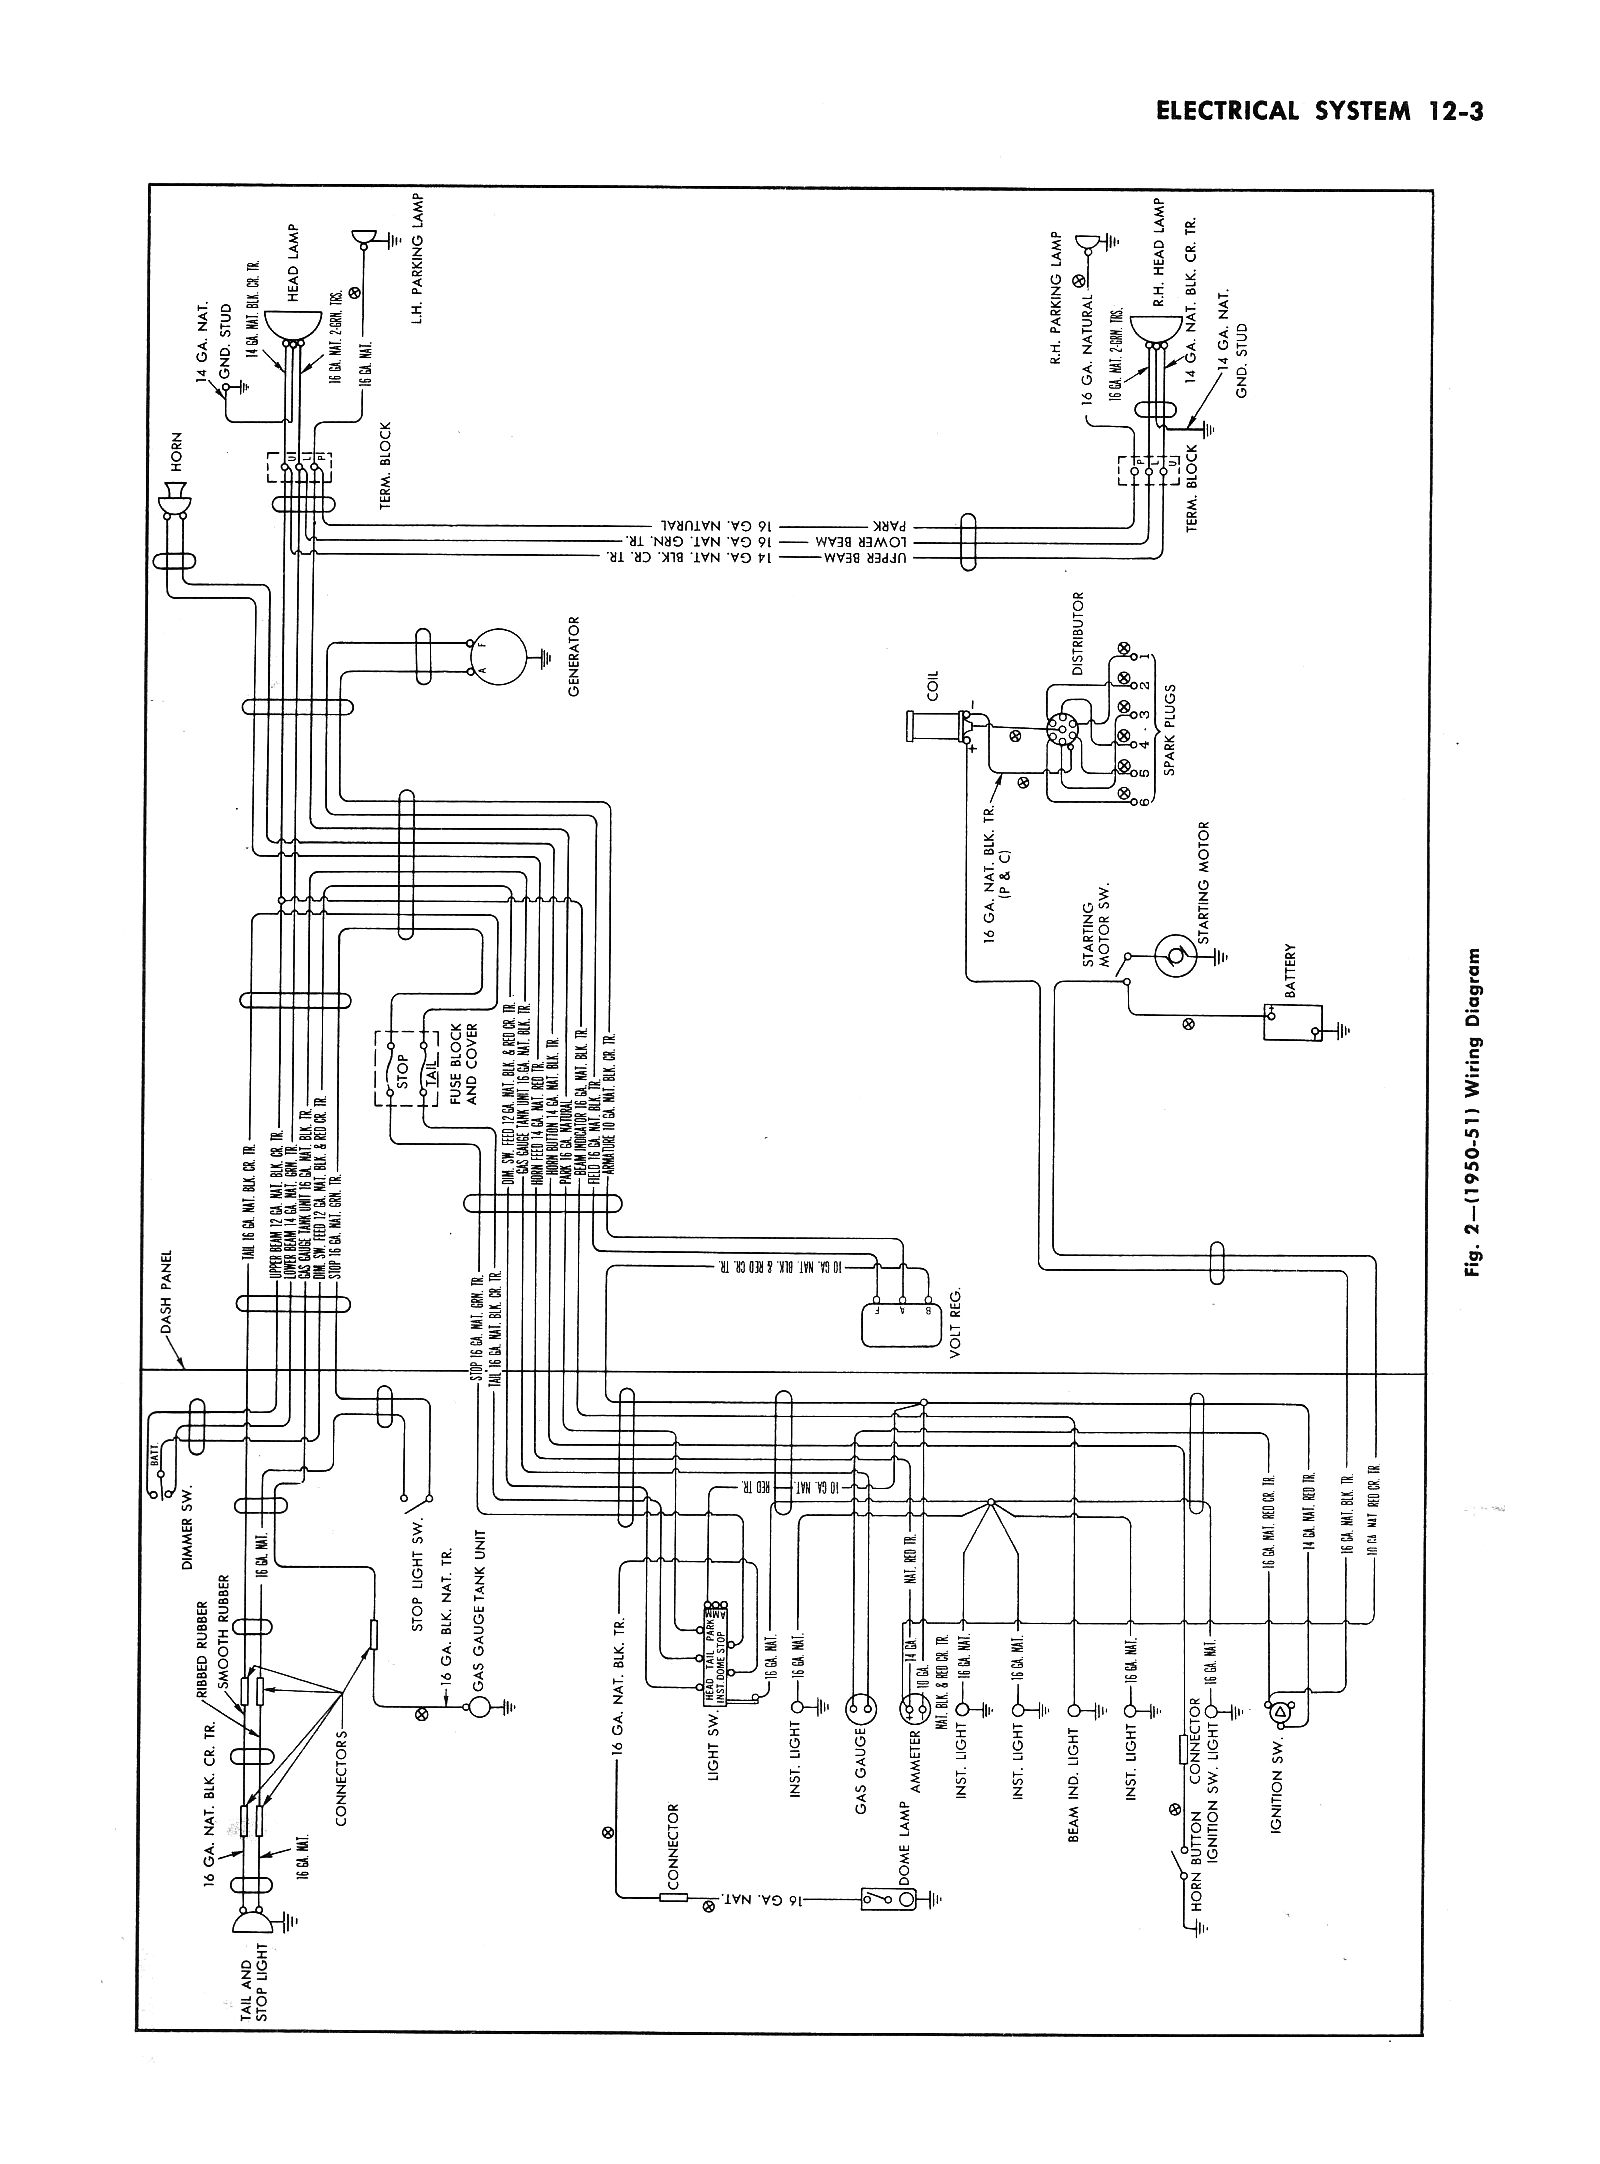 51ctsm1203 1950 chevy truck wiring harness on 1950 download wirning diagrams v6 conversions wiring diagram at creativeand.co